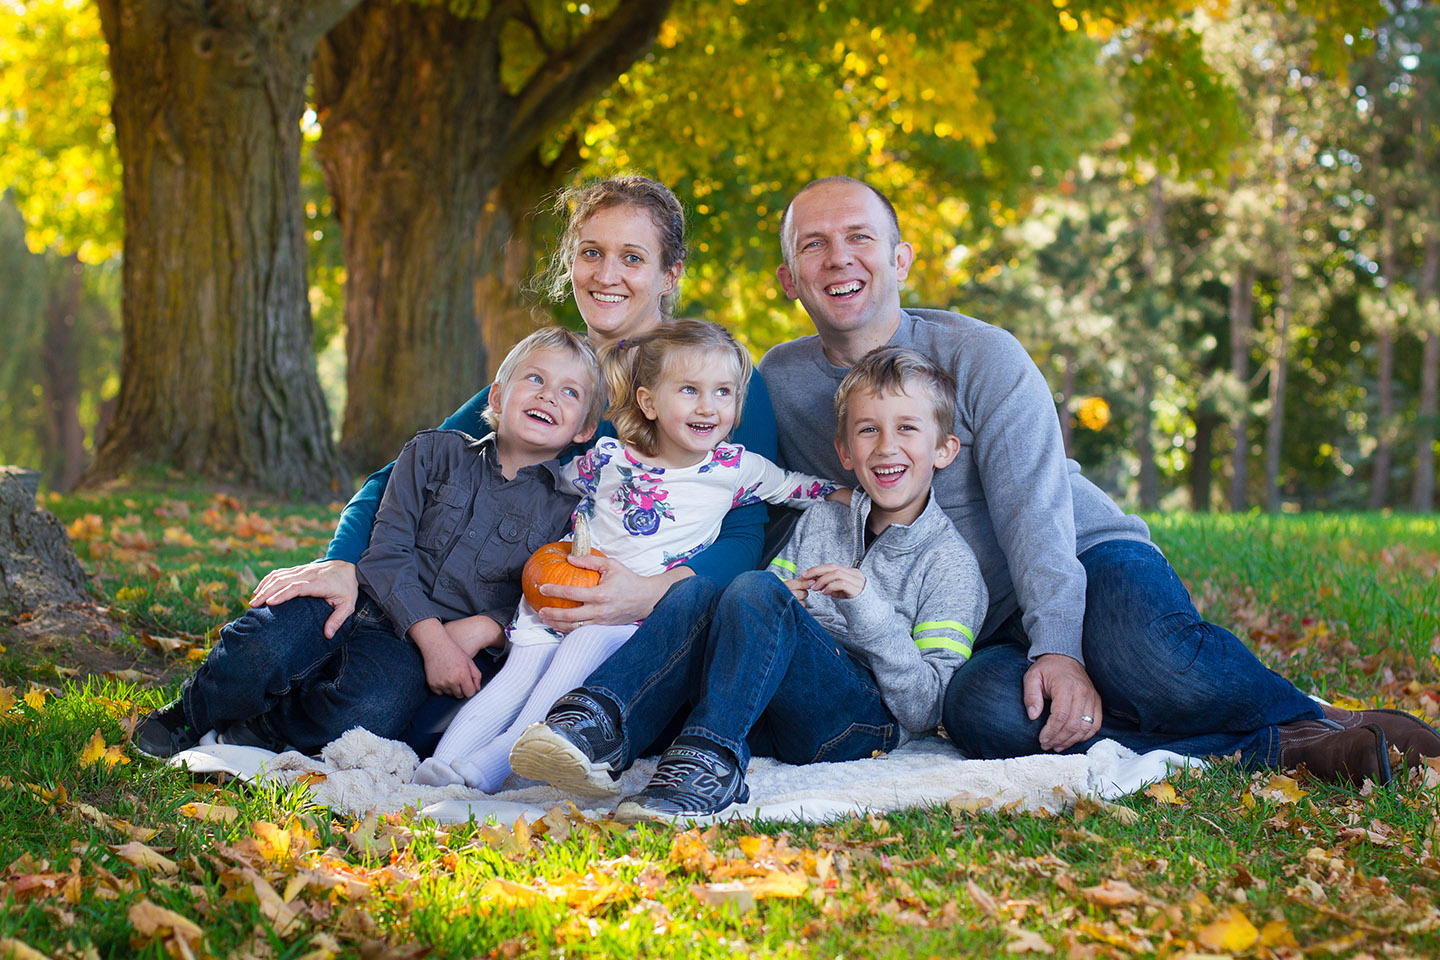 Family photos in Hockley, taken by Frank Myrland Photography